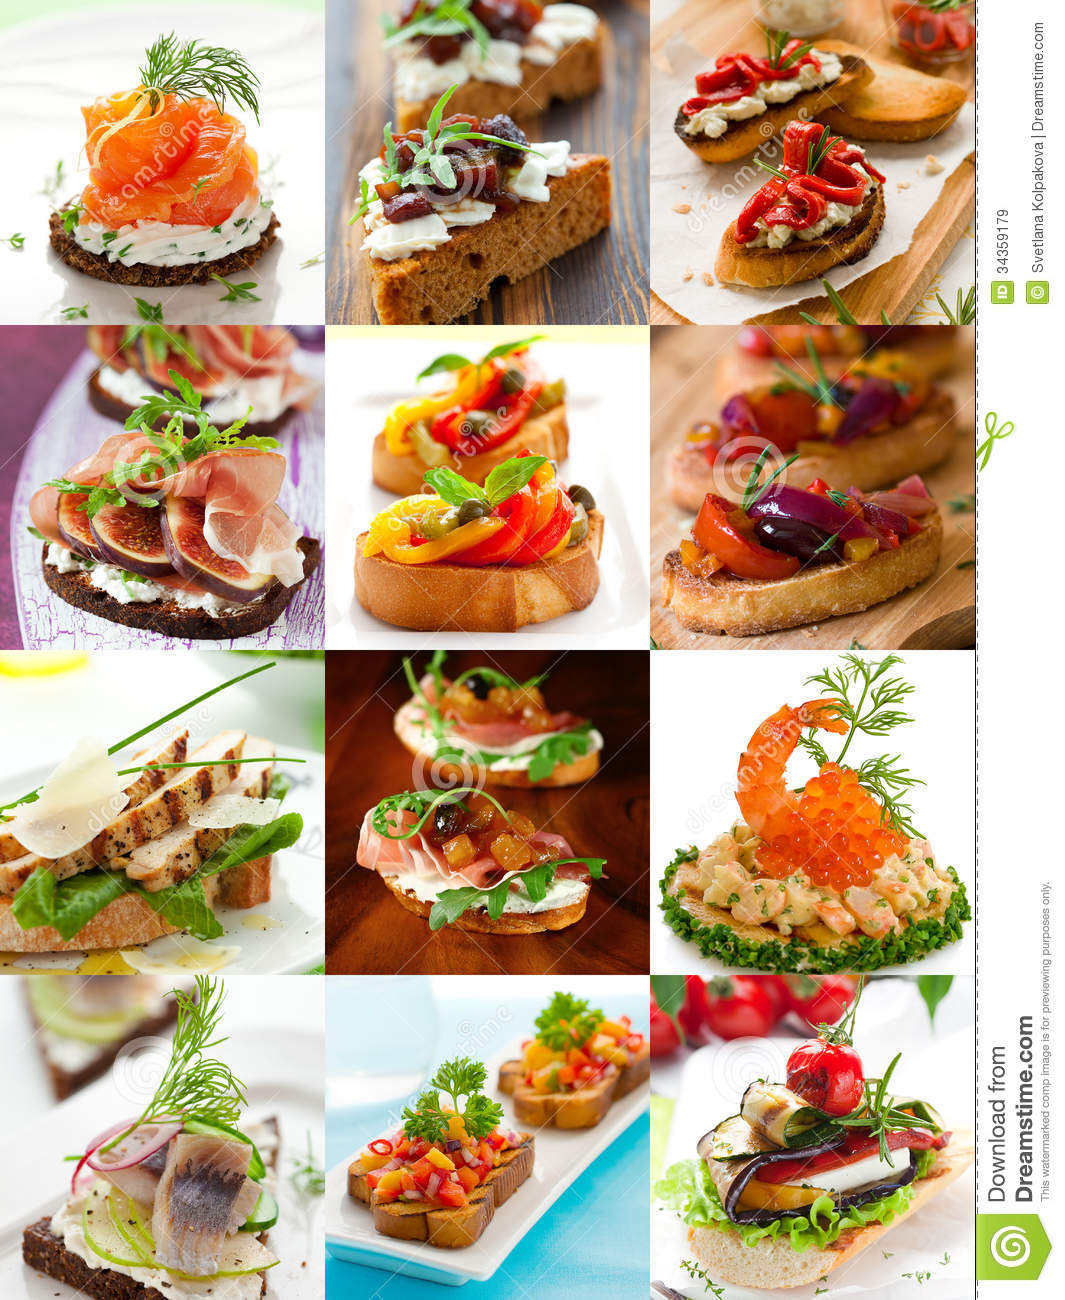 Sandwiches and canape collage royalty free stock images for Types of canape